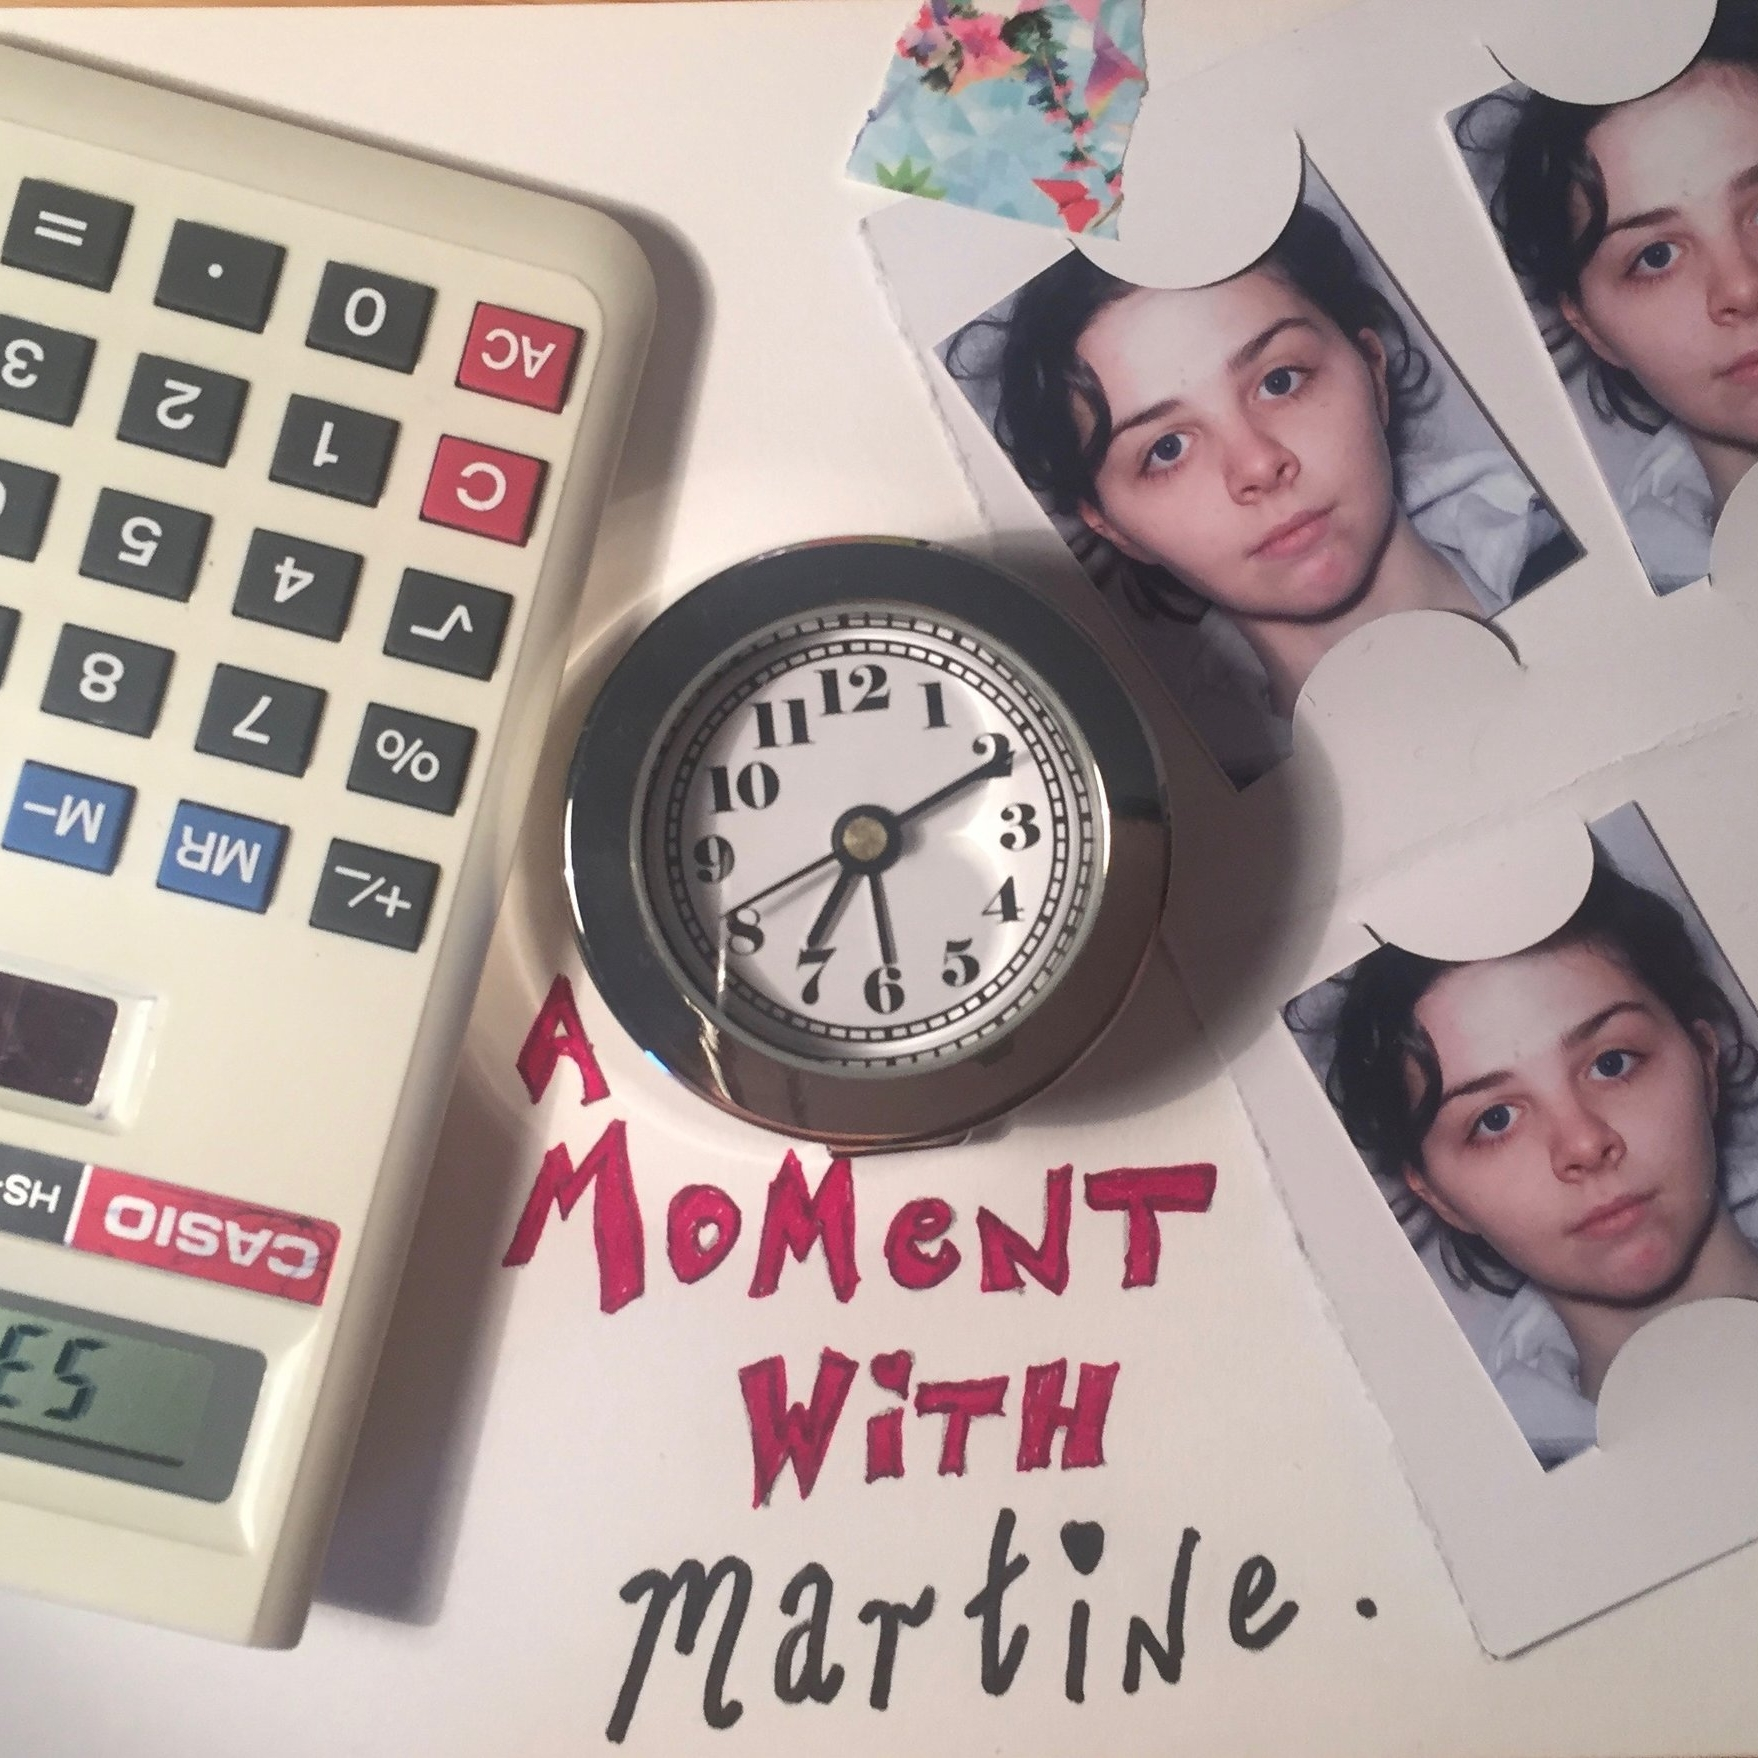 Commedia of Errors - A Moment with Martine